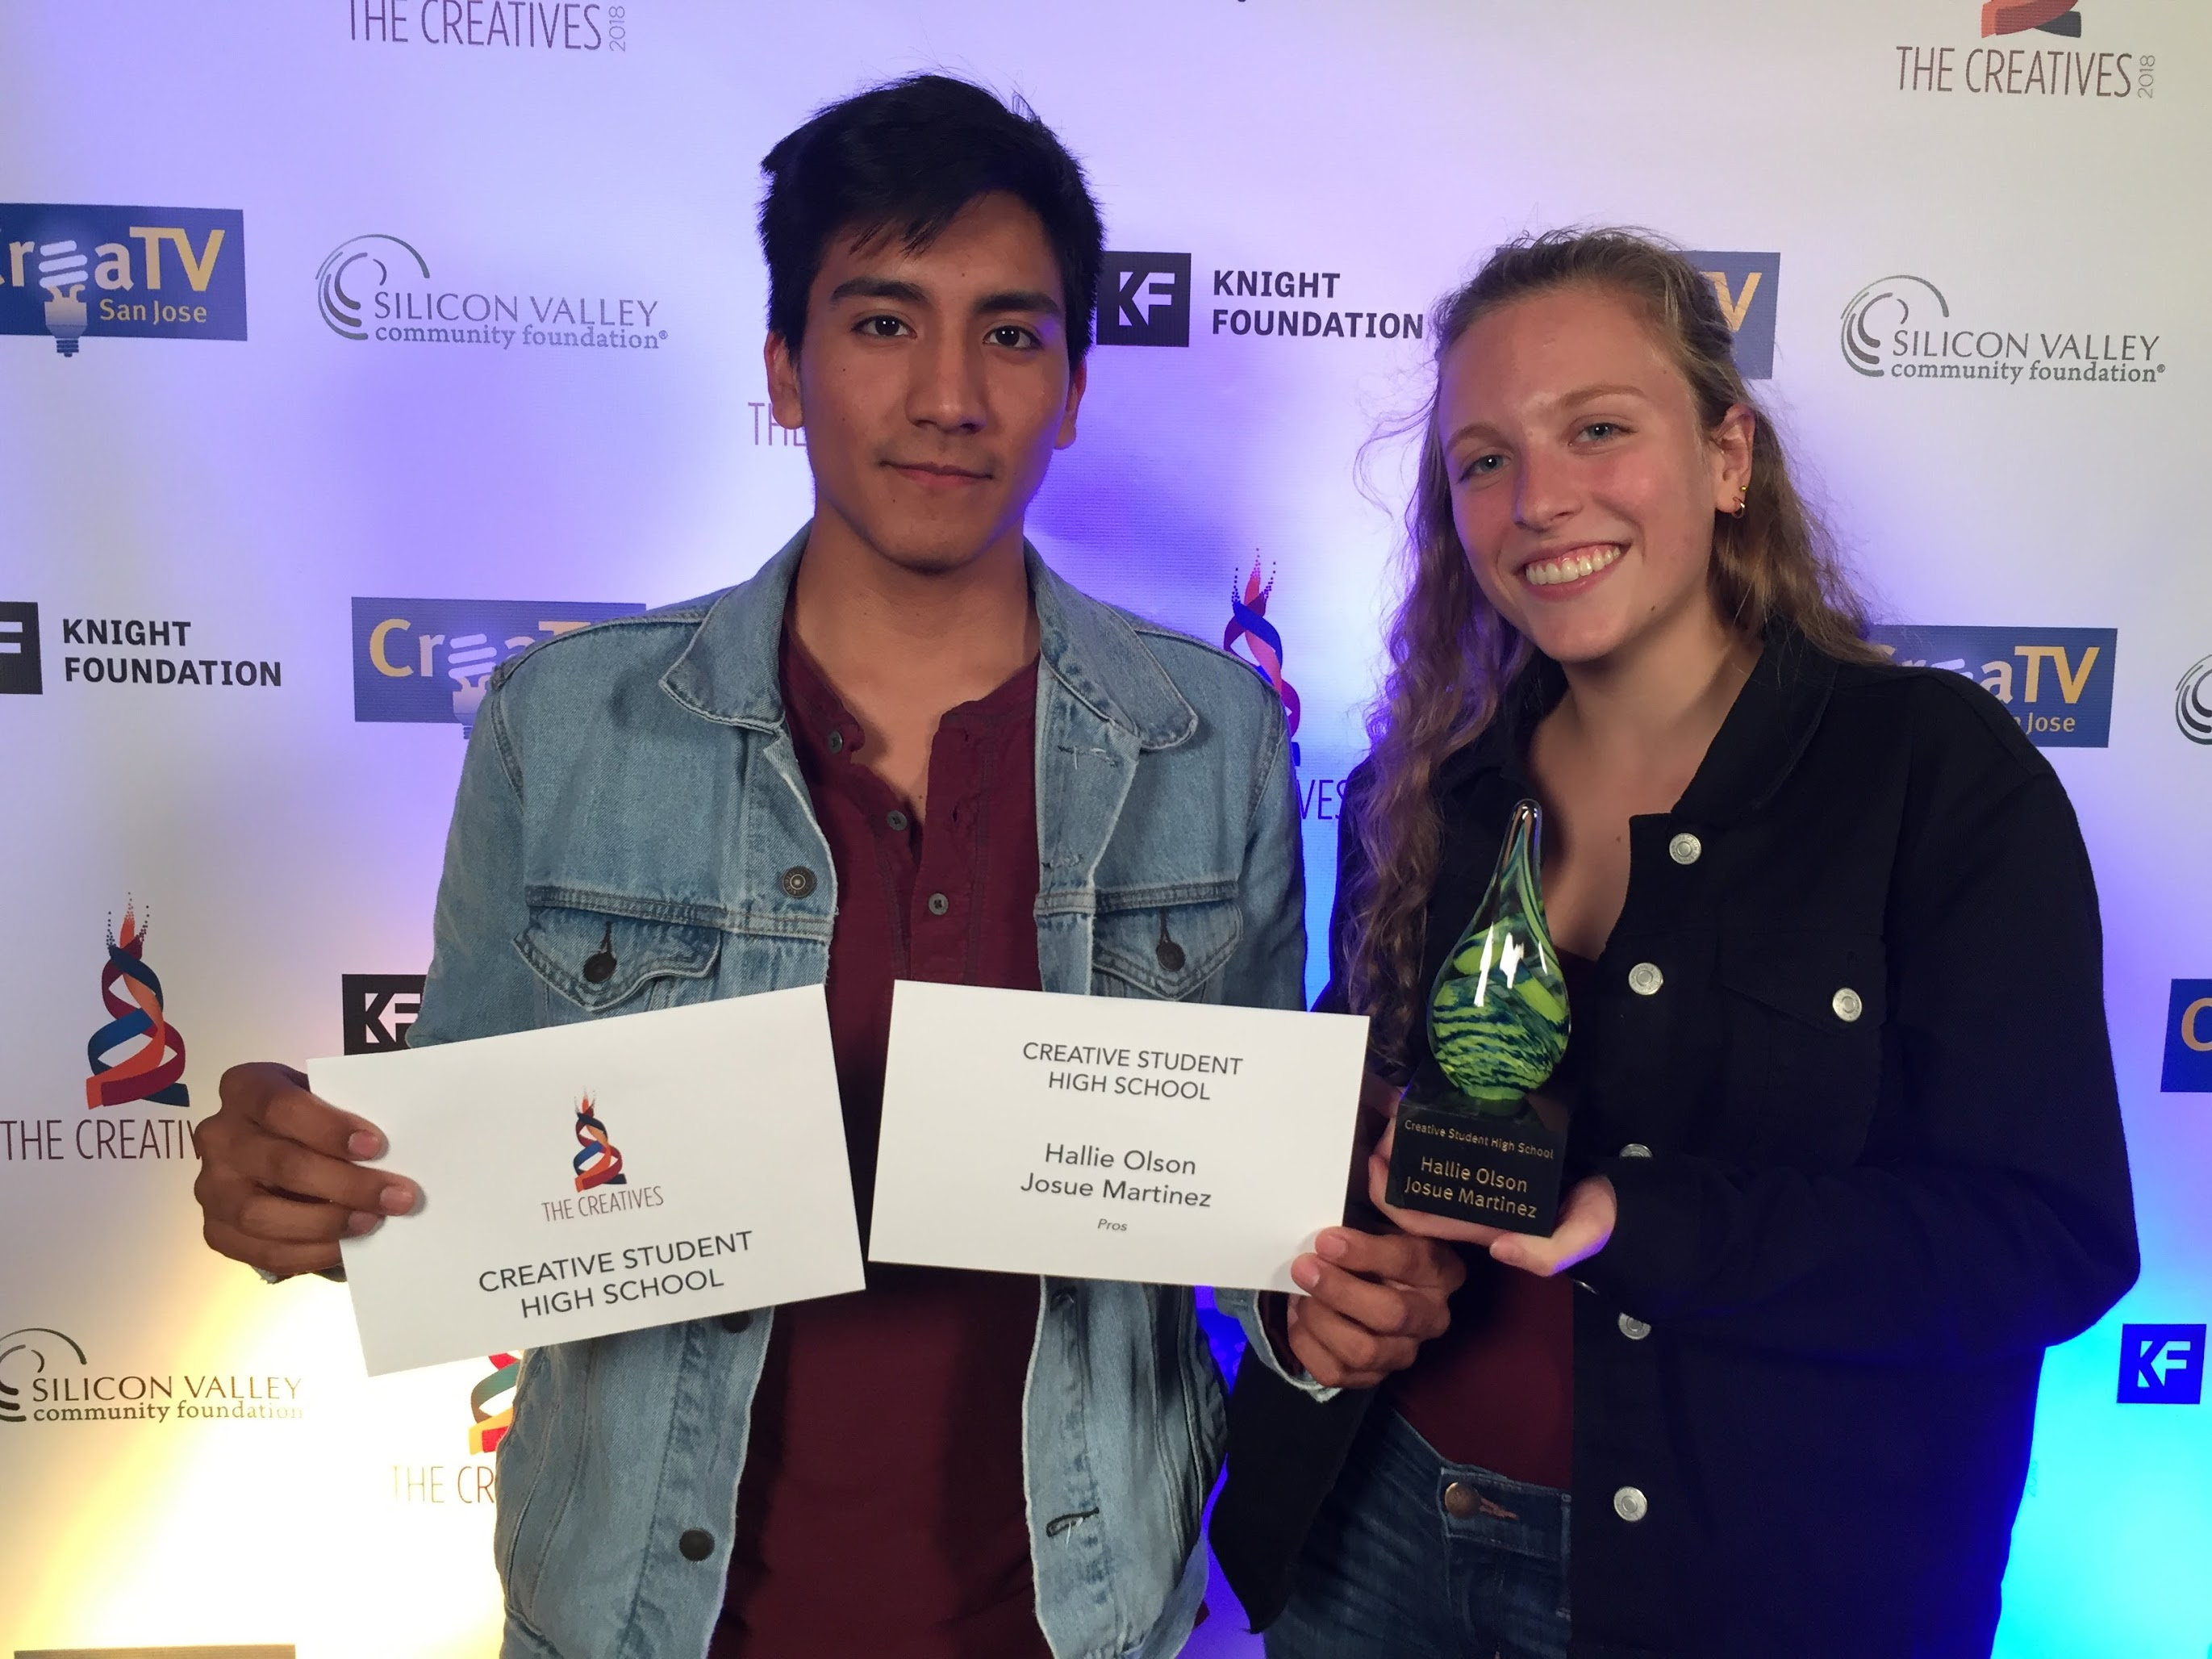 2018 Creative Student High School Award Winners